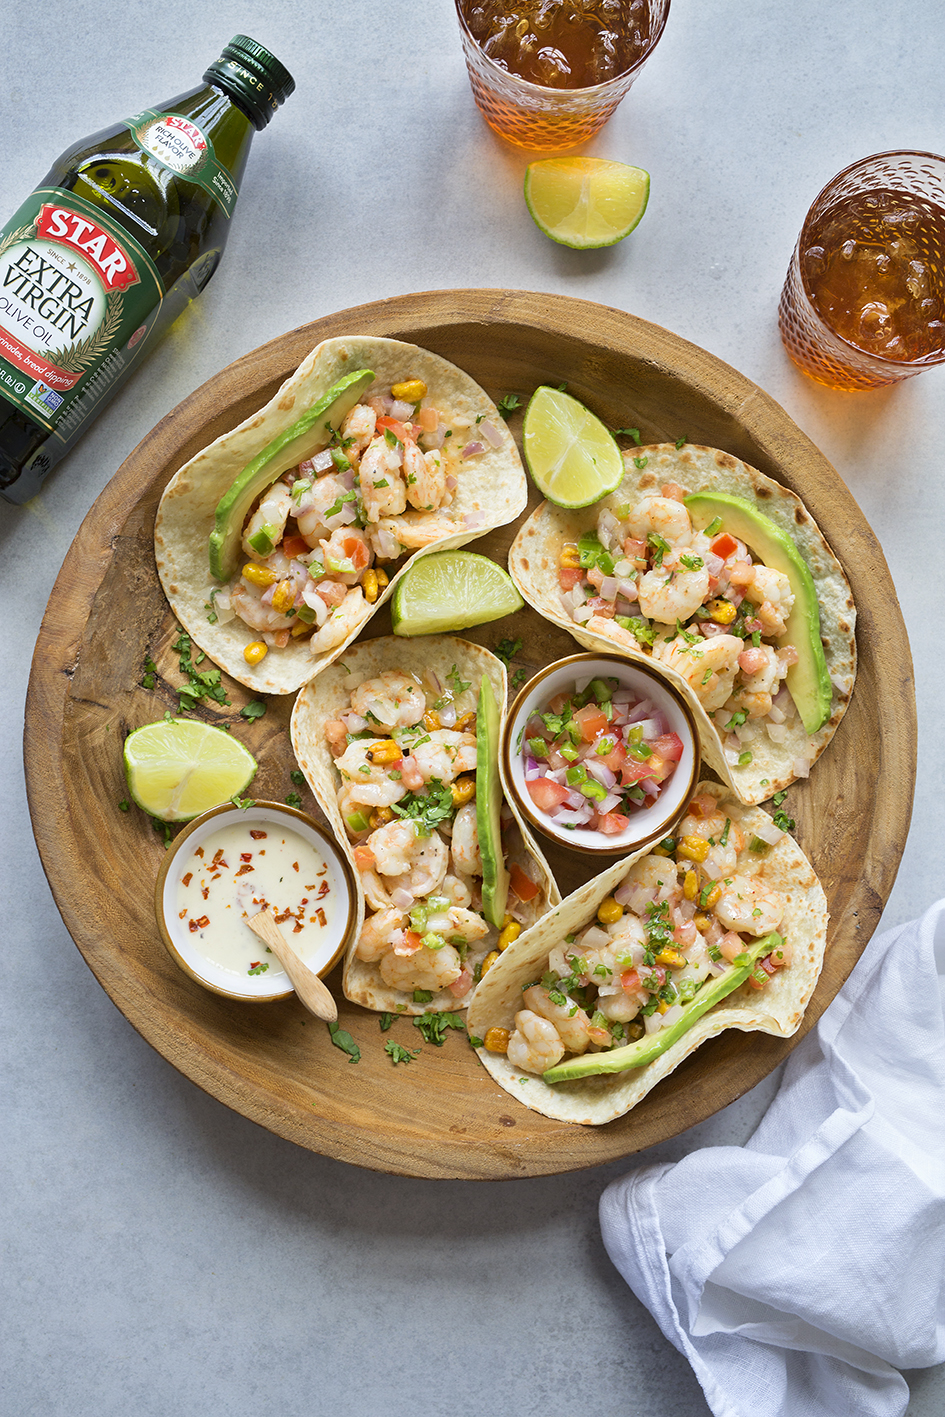 It's hard to believe that such a simple recipe could be so tasty and healthy. Once you've tried these shrimp tacos, you'll never look back!  #STARFineFoods